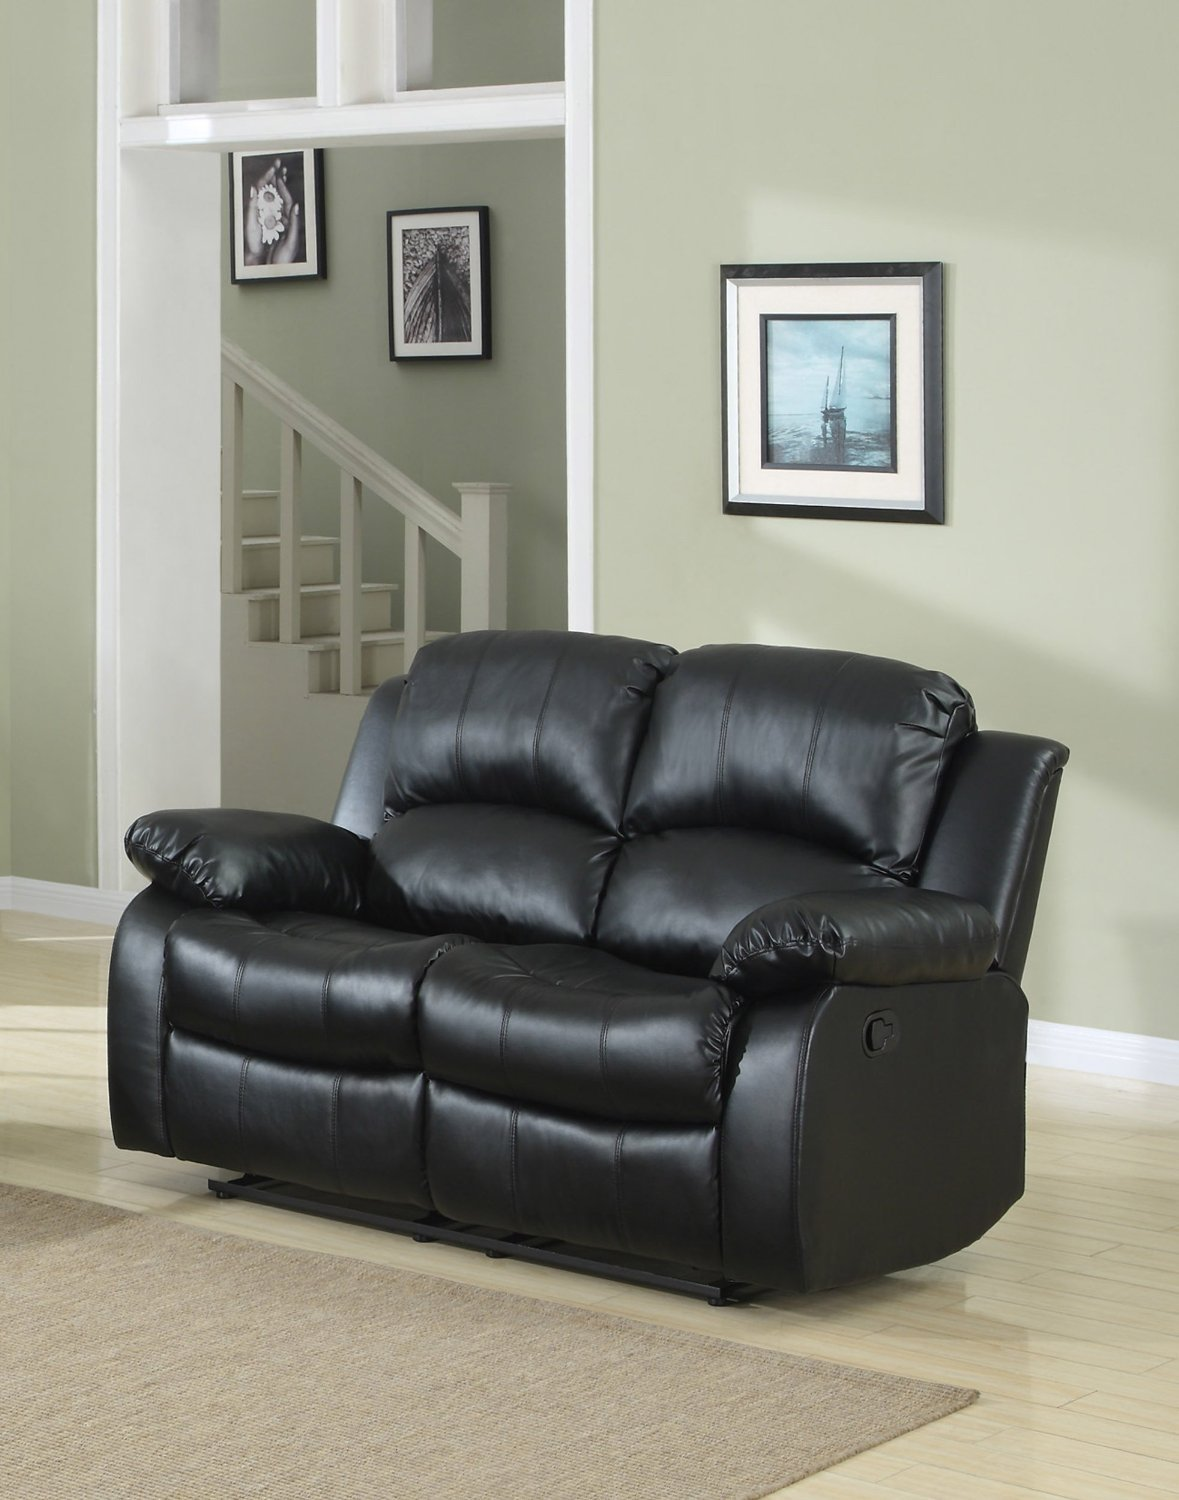 Double Reclining Loveseat Bonded Leather Recliner Living Room Furniture  Black